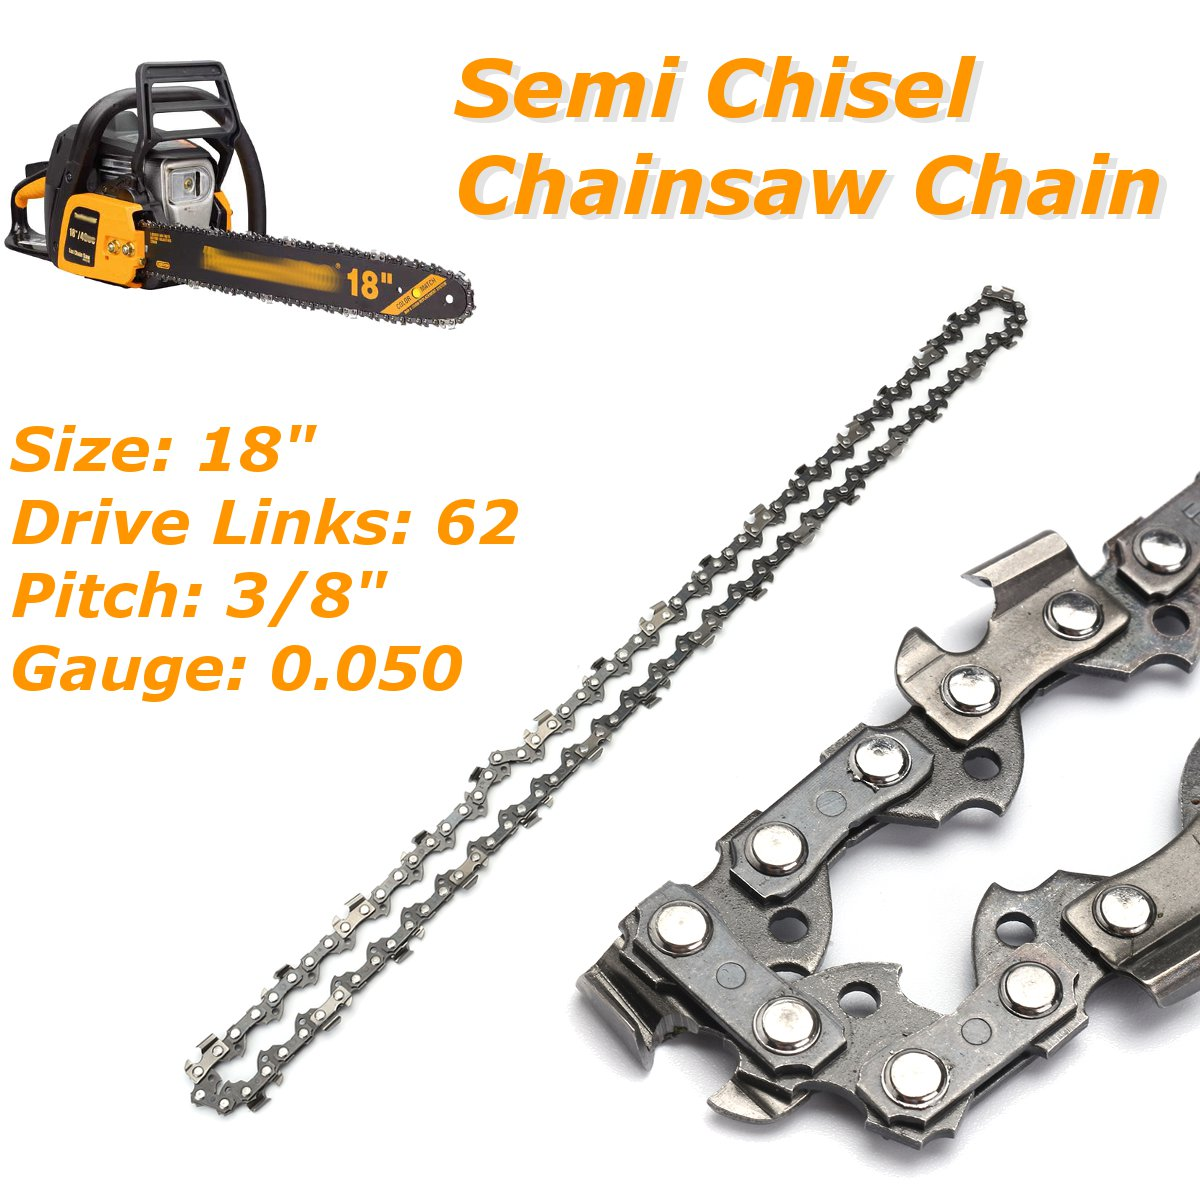 Chainsaw Chain Semi Chisel Chainsaw Chain Blade 18 Inch 3/8 For Poulan Homelite Lectric Saw For Homelite Poulan Pro Other Models